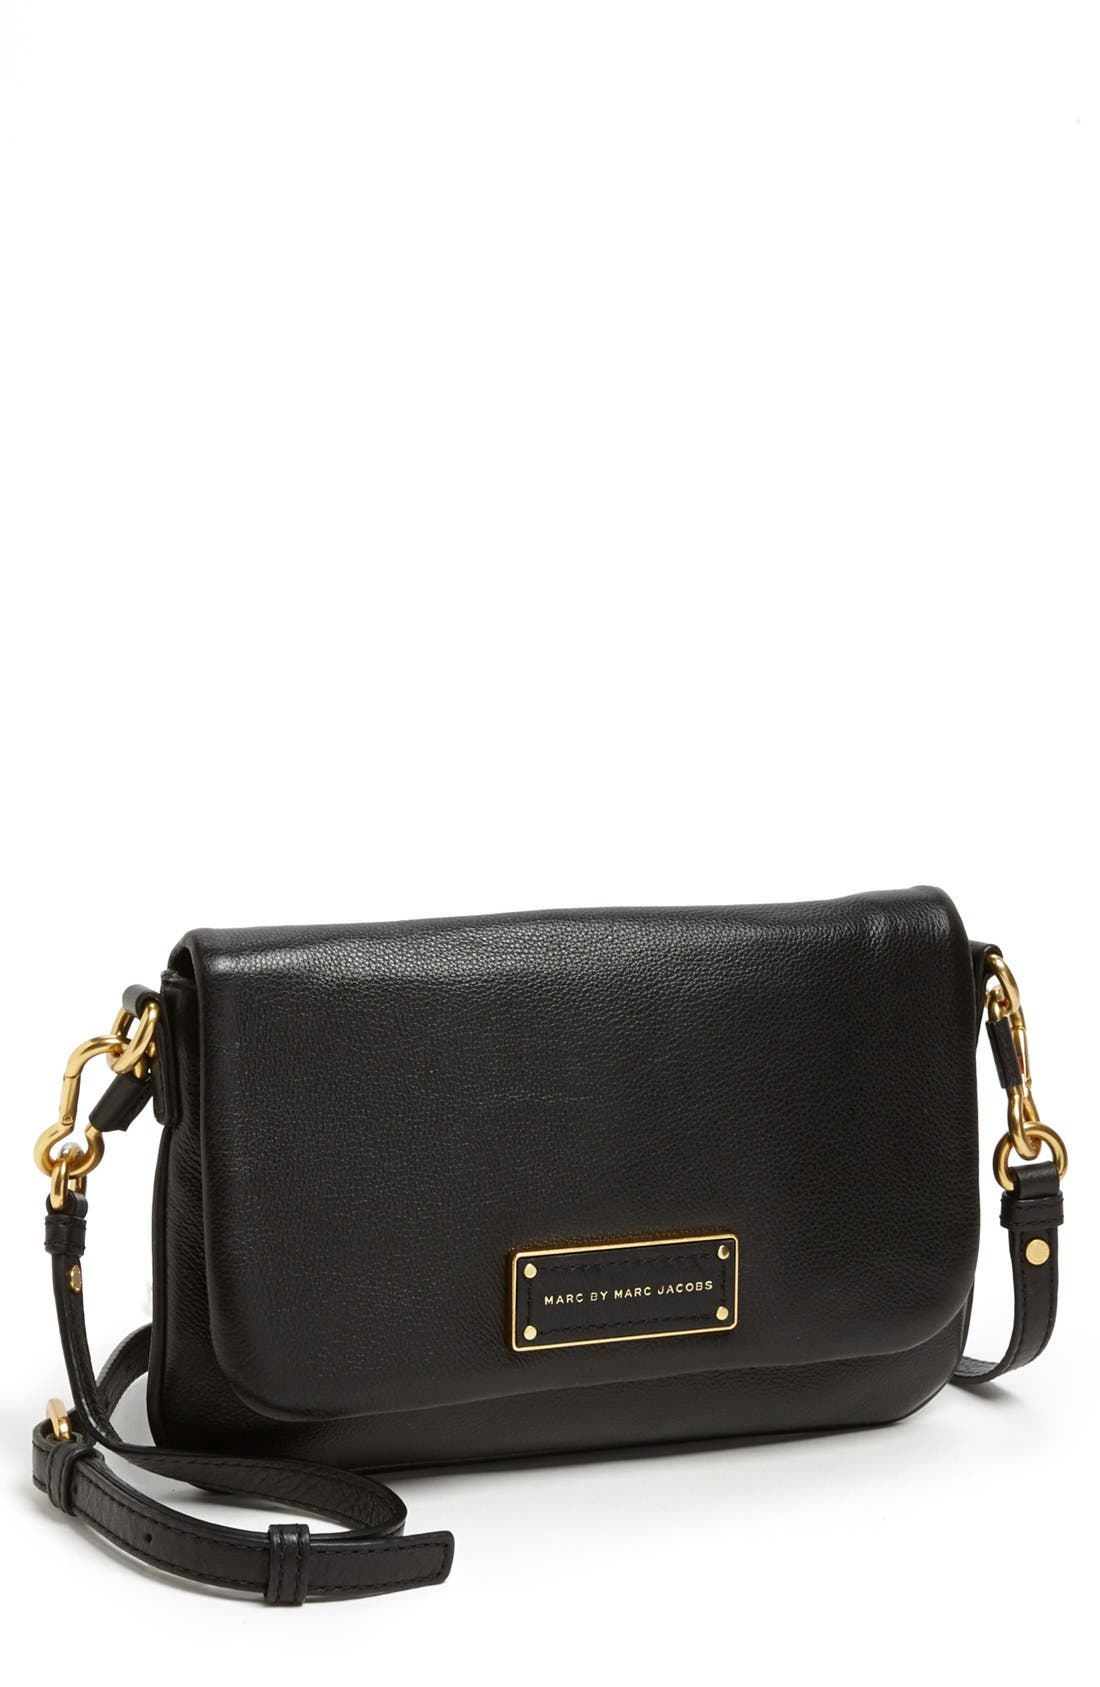 MARC BY MARC JACOBS 'Too Hot to Handle - Percy' Crossbody Bag,                             Main thumbnail 1, color,                             001